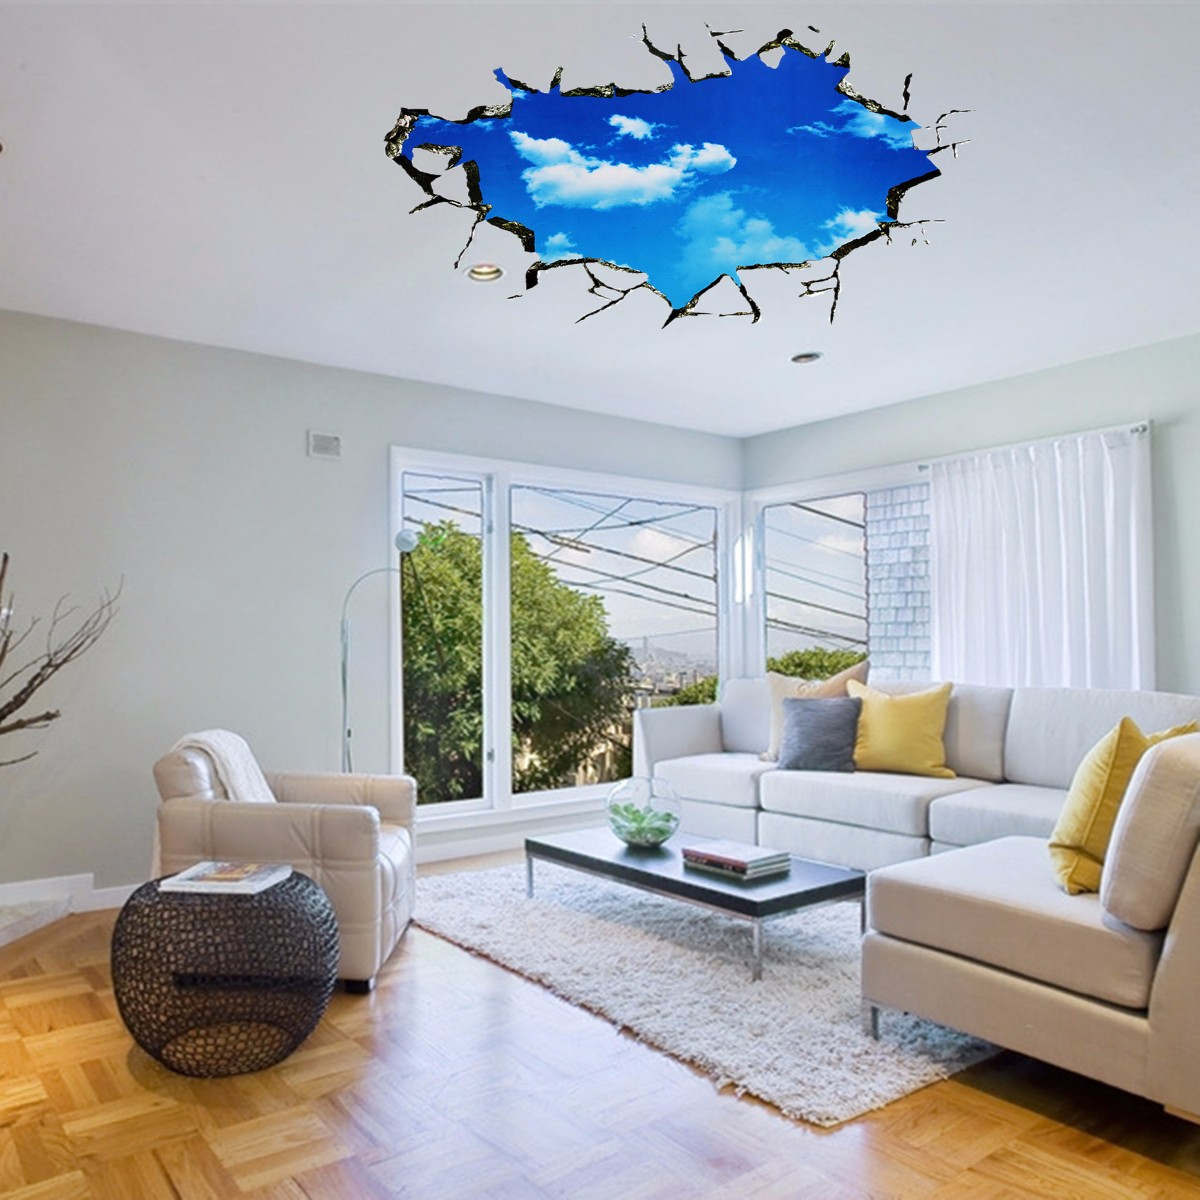 Pag blue sky 3d wall decals sticker ceiling hole sticker home bedroom wall decor gift at banggood - Wall decoration design ...